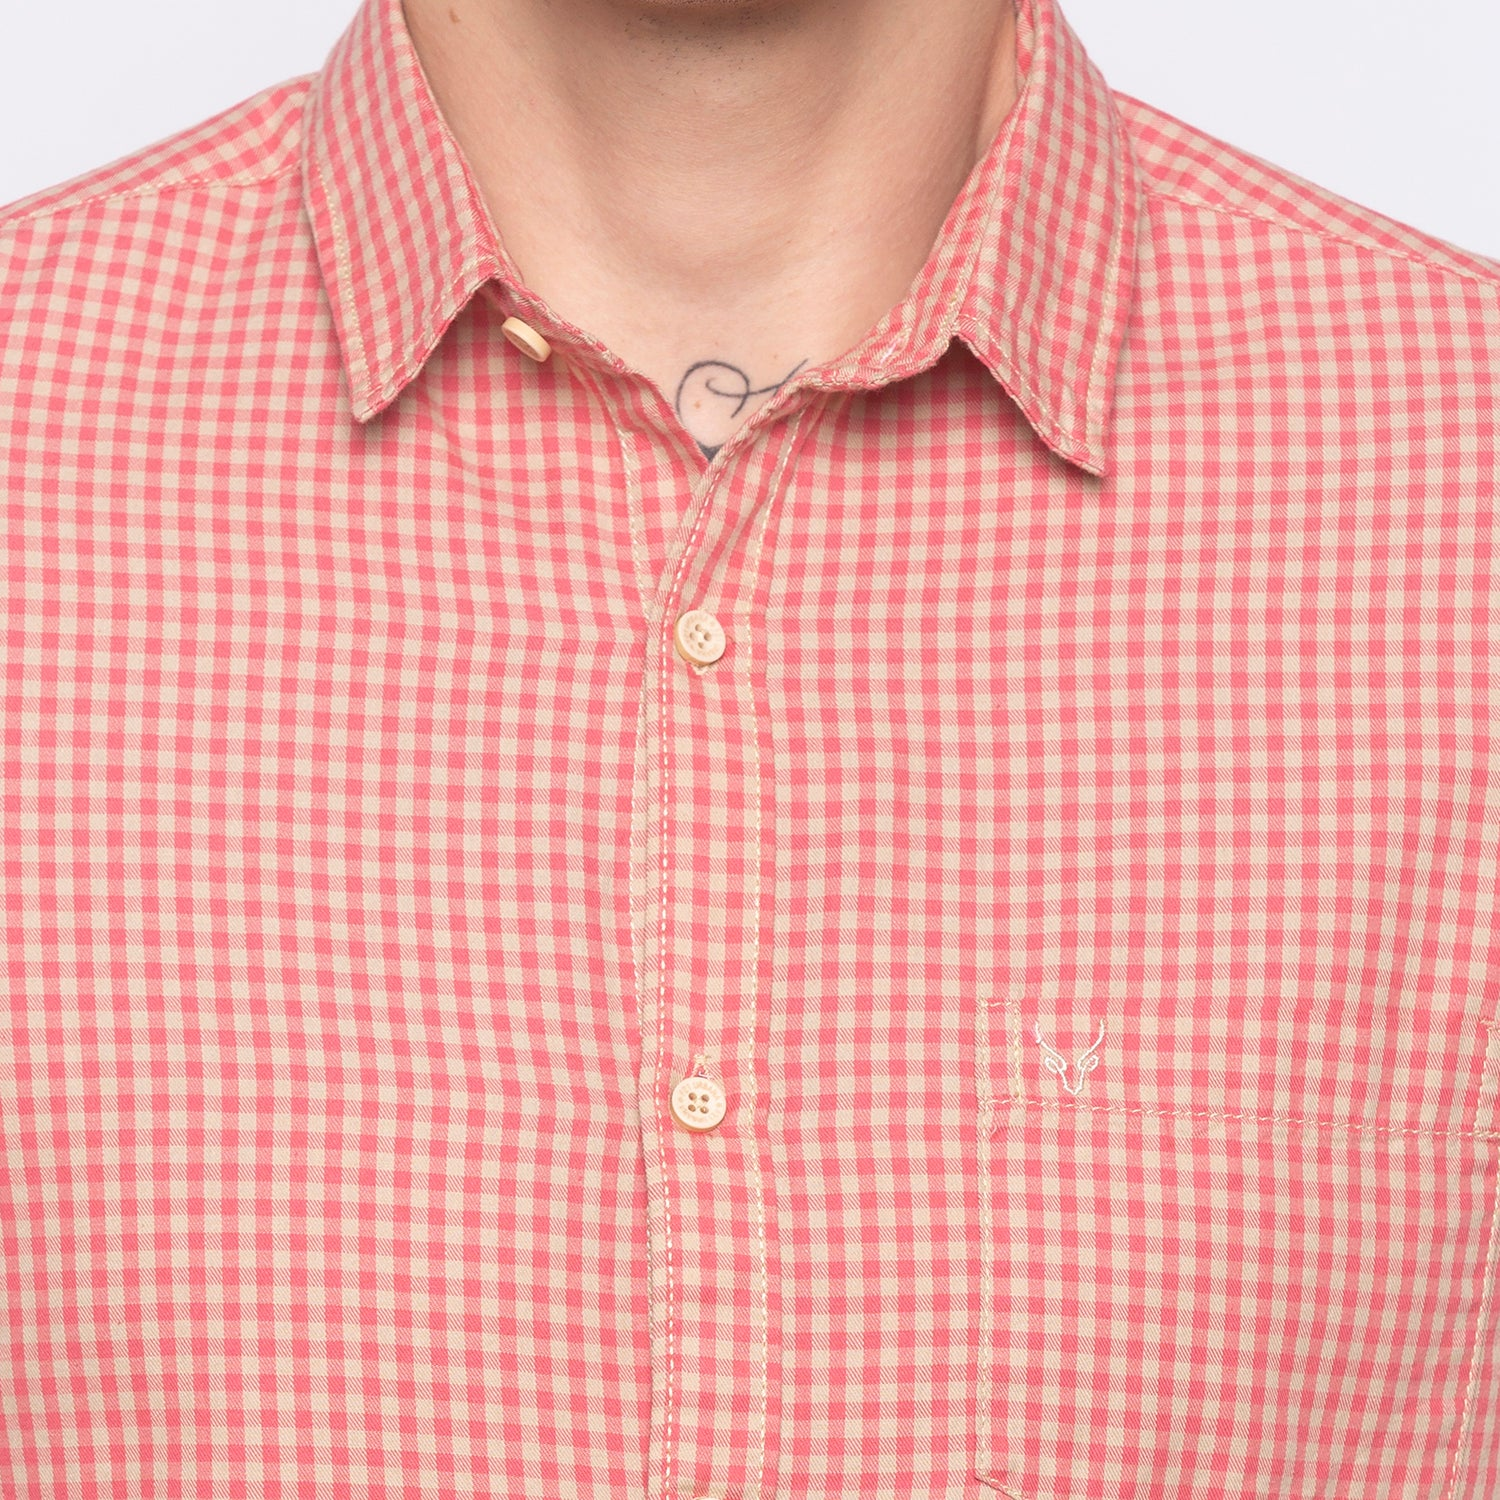 Gingham Check Pink Casual Shirt-5